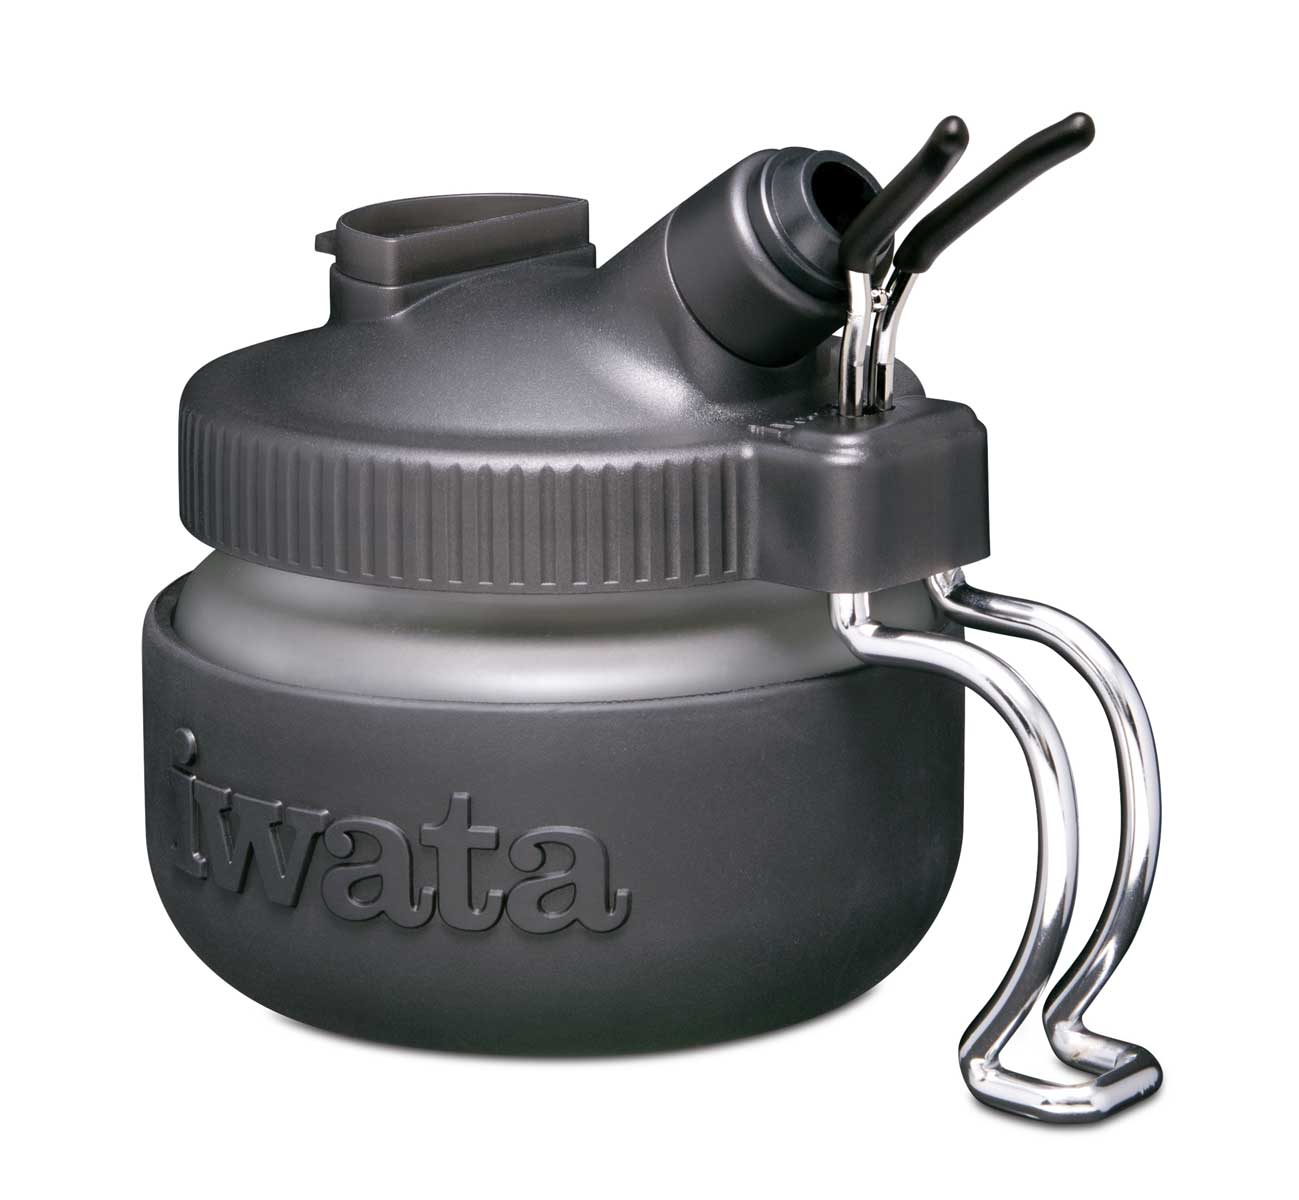 Iwata Universal Spray Out Pot